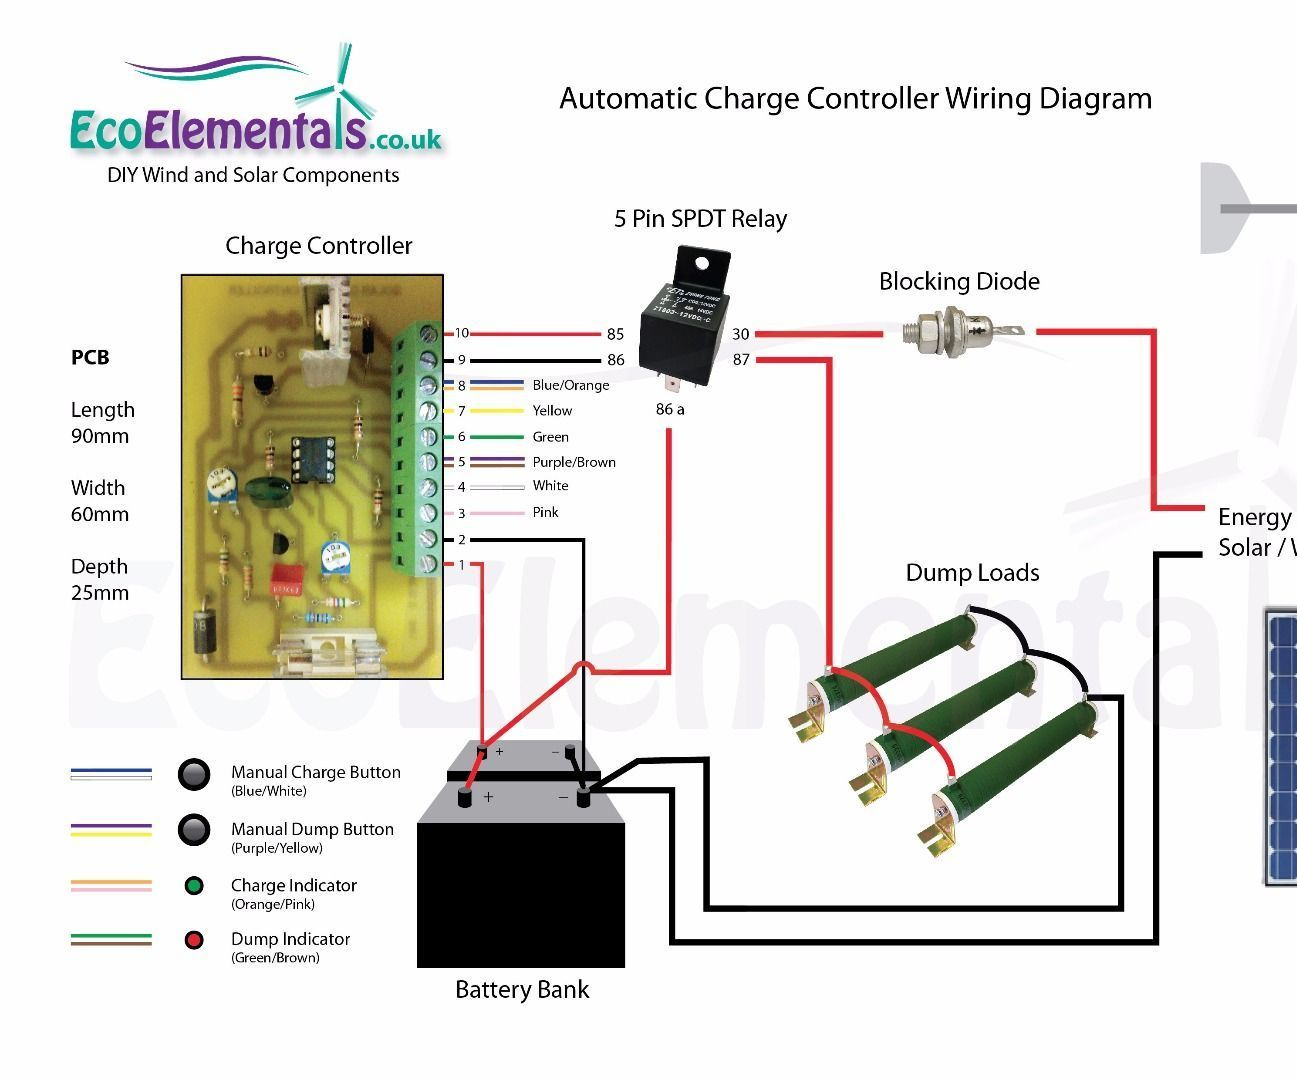 charge controller wiring diagram for diy wind turbine or solar rh pinterest com solar panel controller wiring diagram solar charge controller wiring diagram